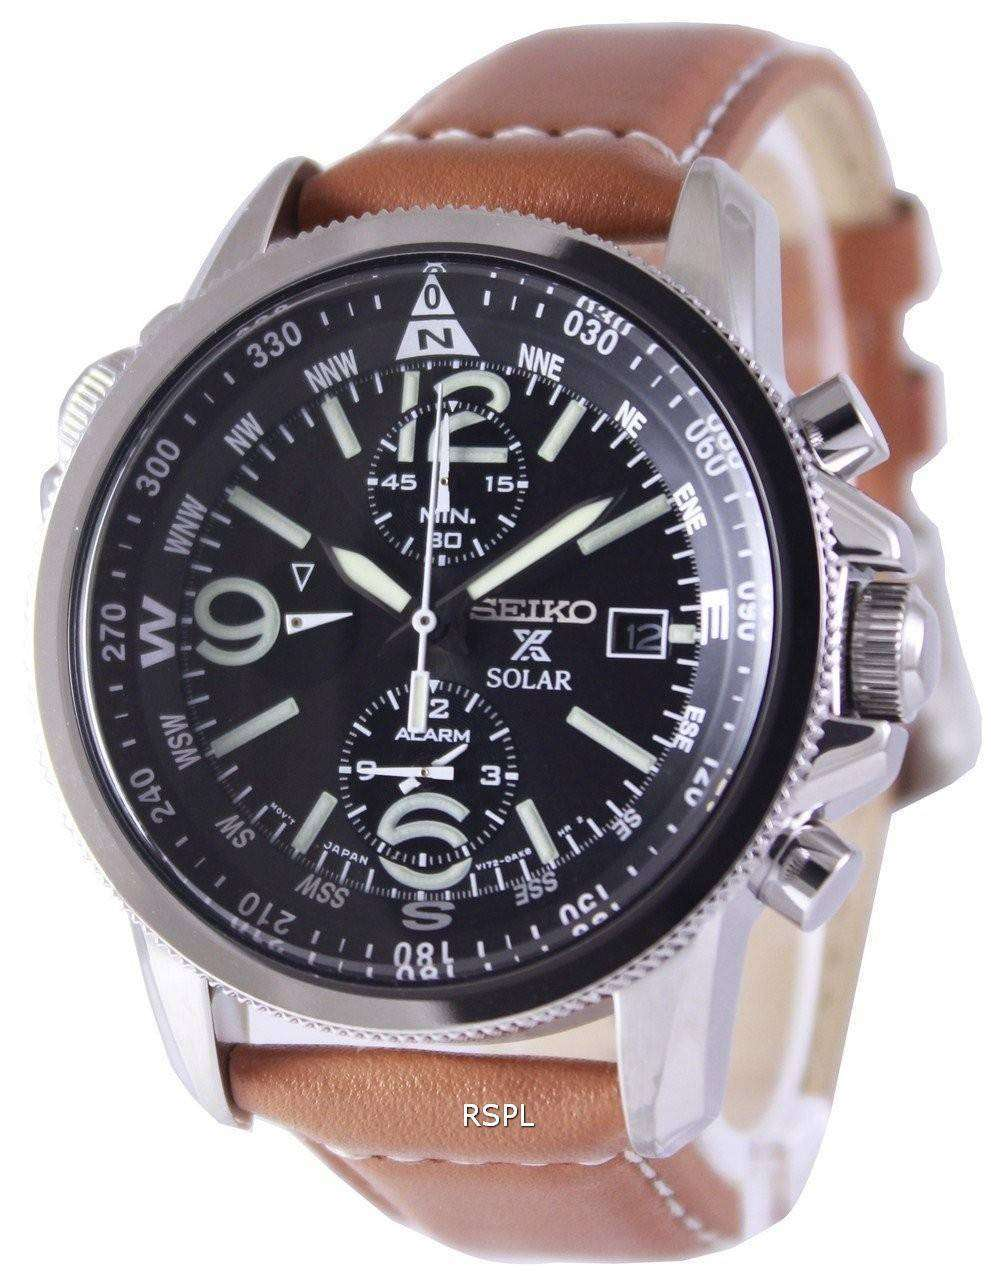 Seiko solar alarm chronograph ssc081 ssc081p1 ssc081p men 39 s watch for Solar watches